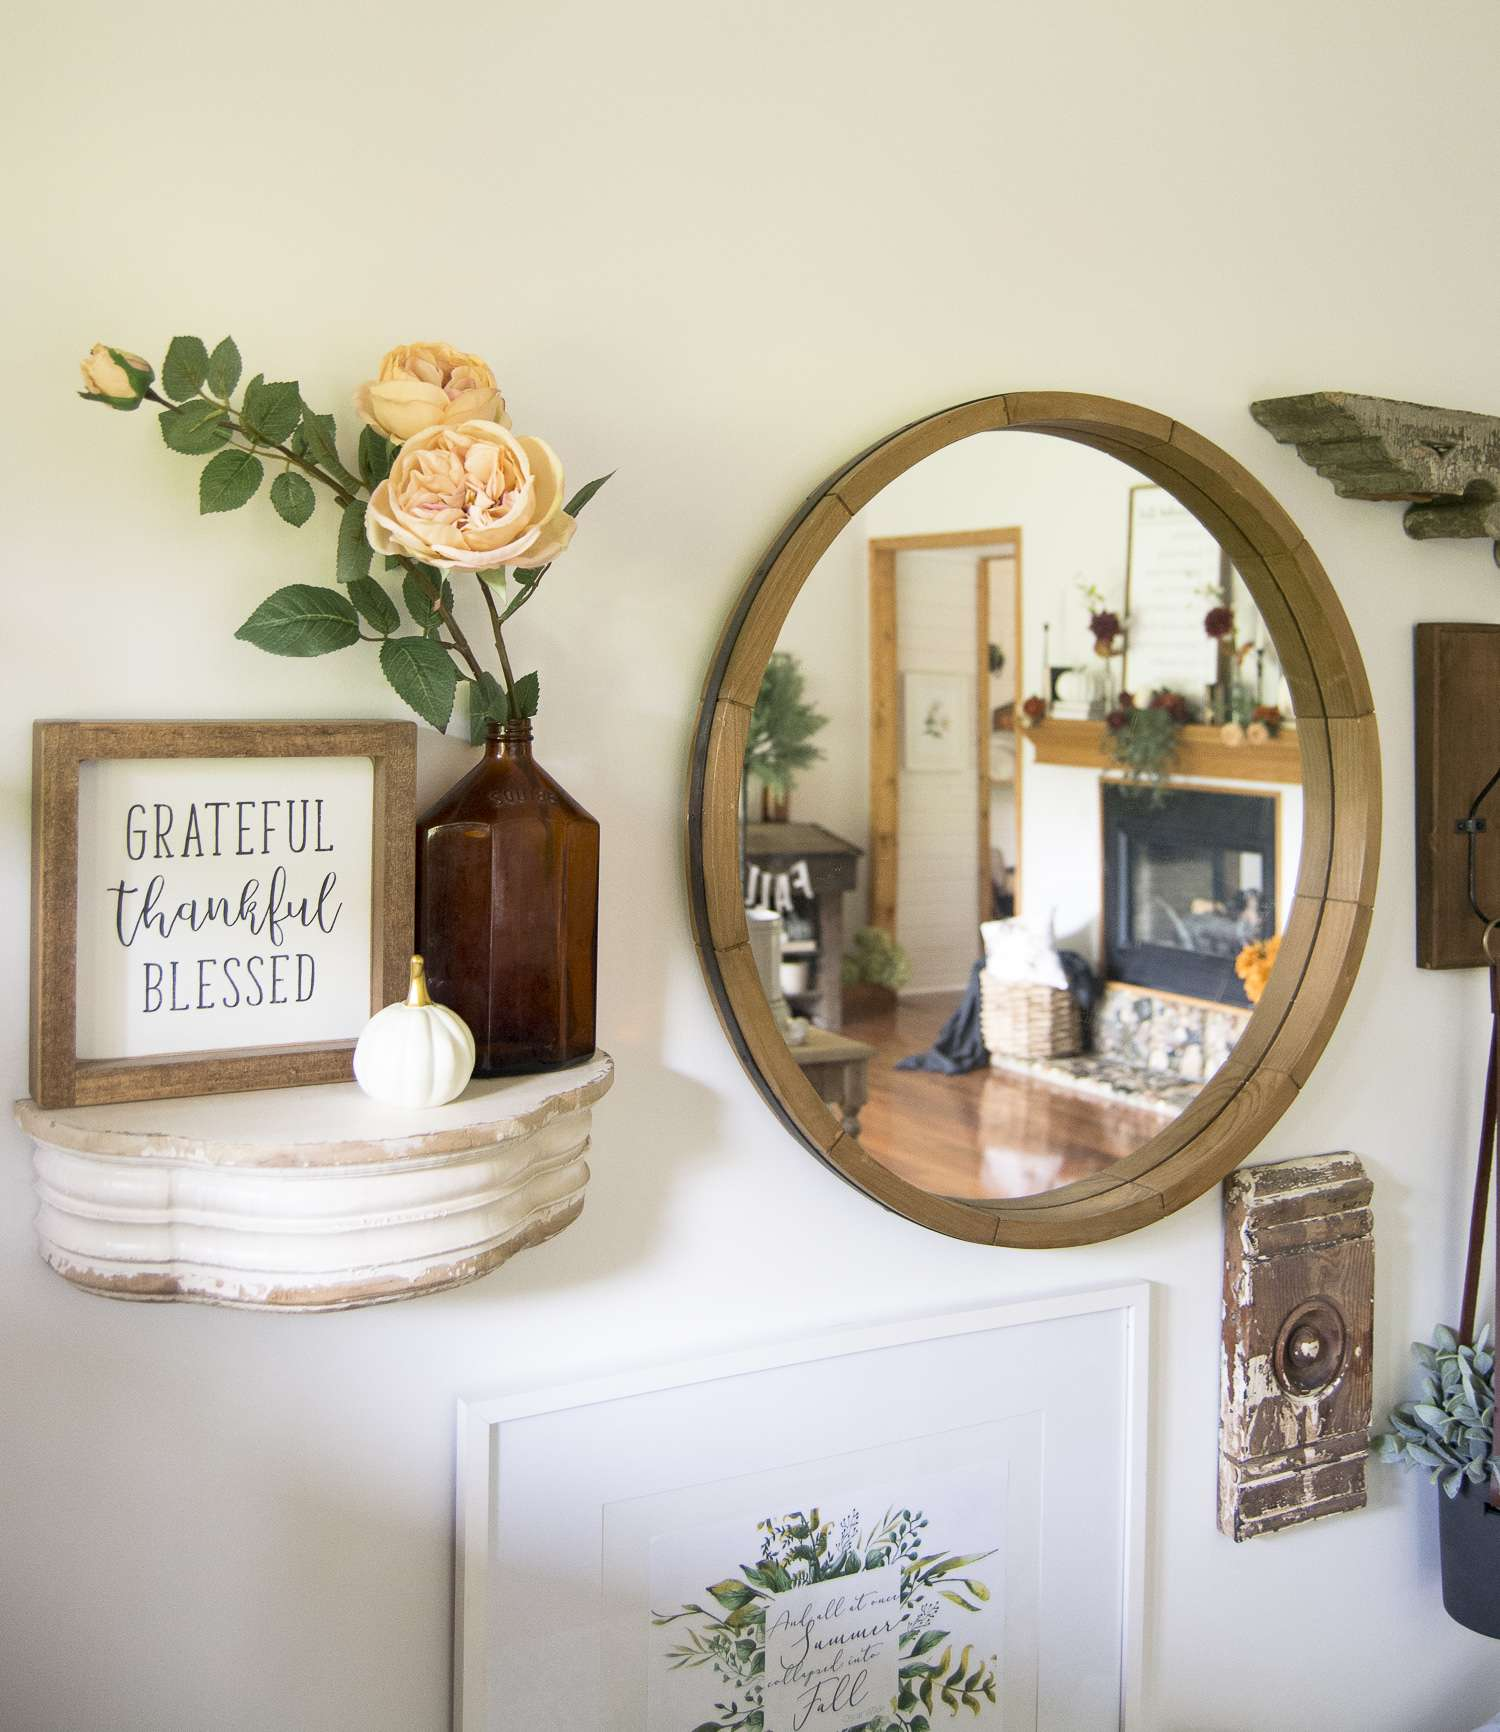 Simple Porch & Entryway Fall Decor with Free Printable! Join me and 13 other fabulous fall homes to be inspired with beautiful and simple fall decor ideas!